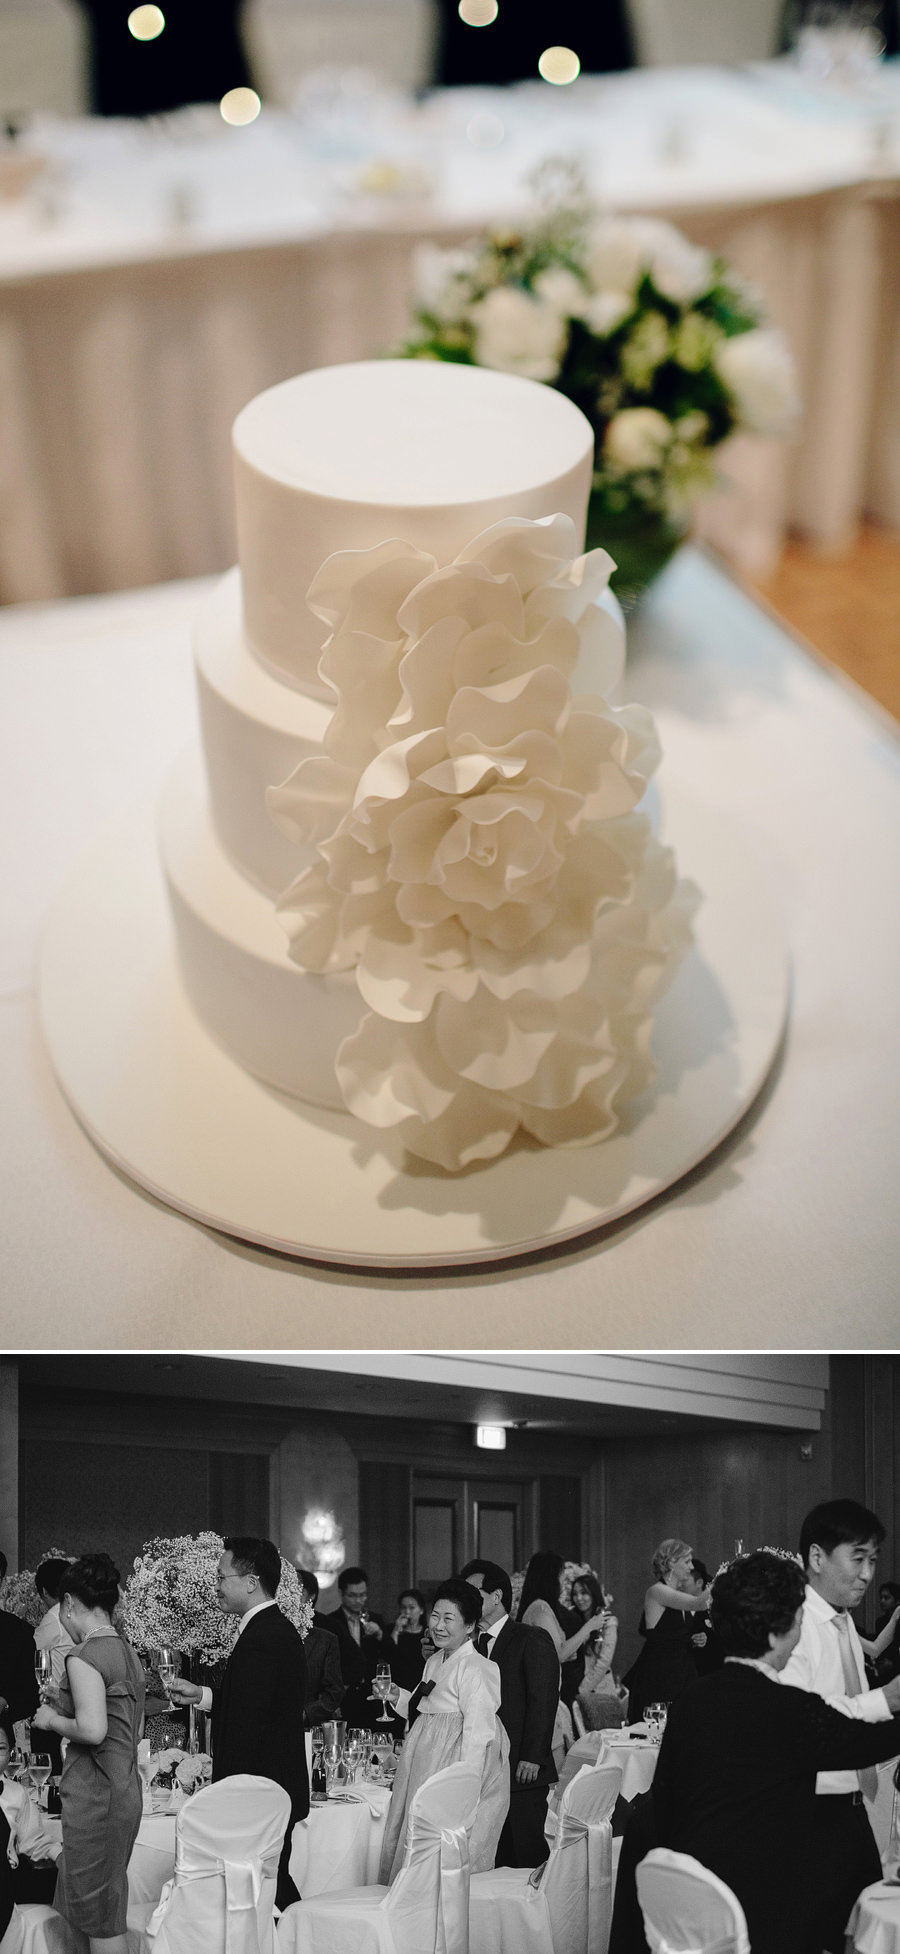 Shangrila Hotel Wedding Photographers: Cake